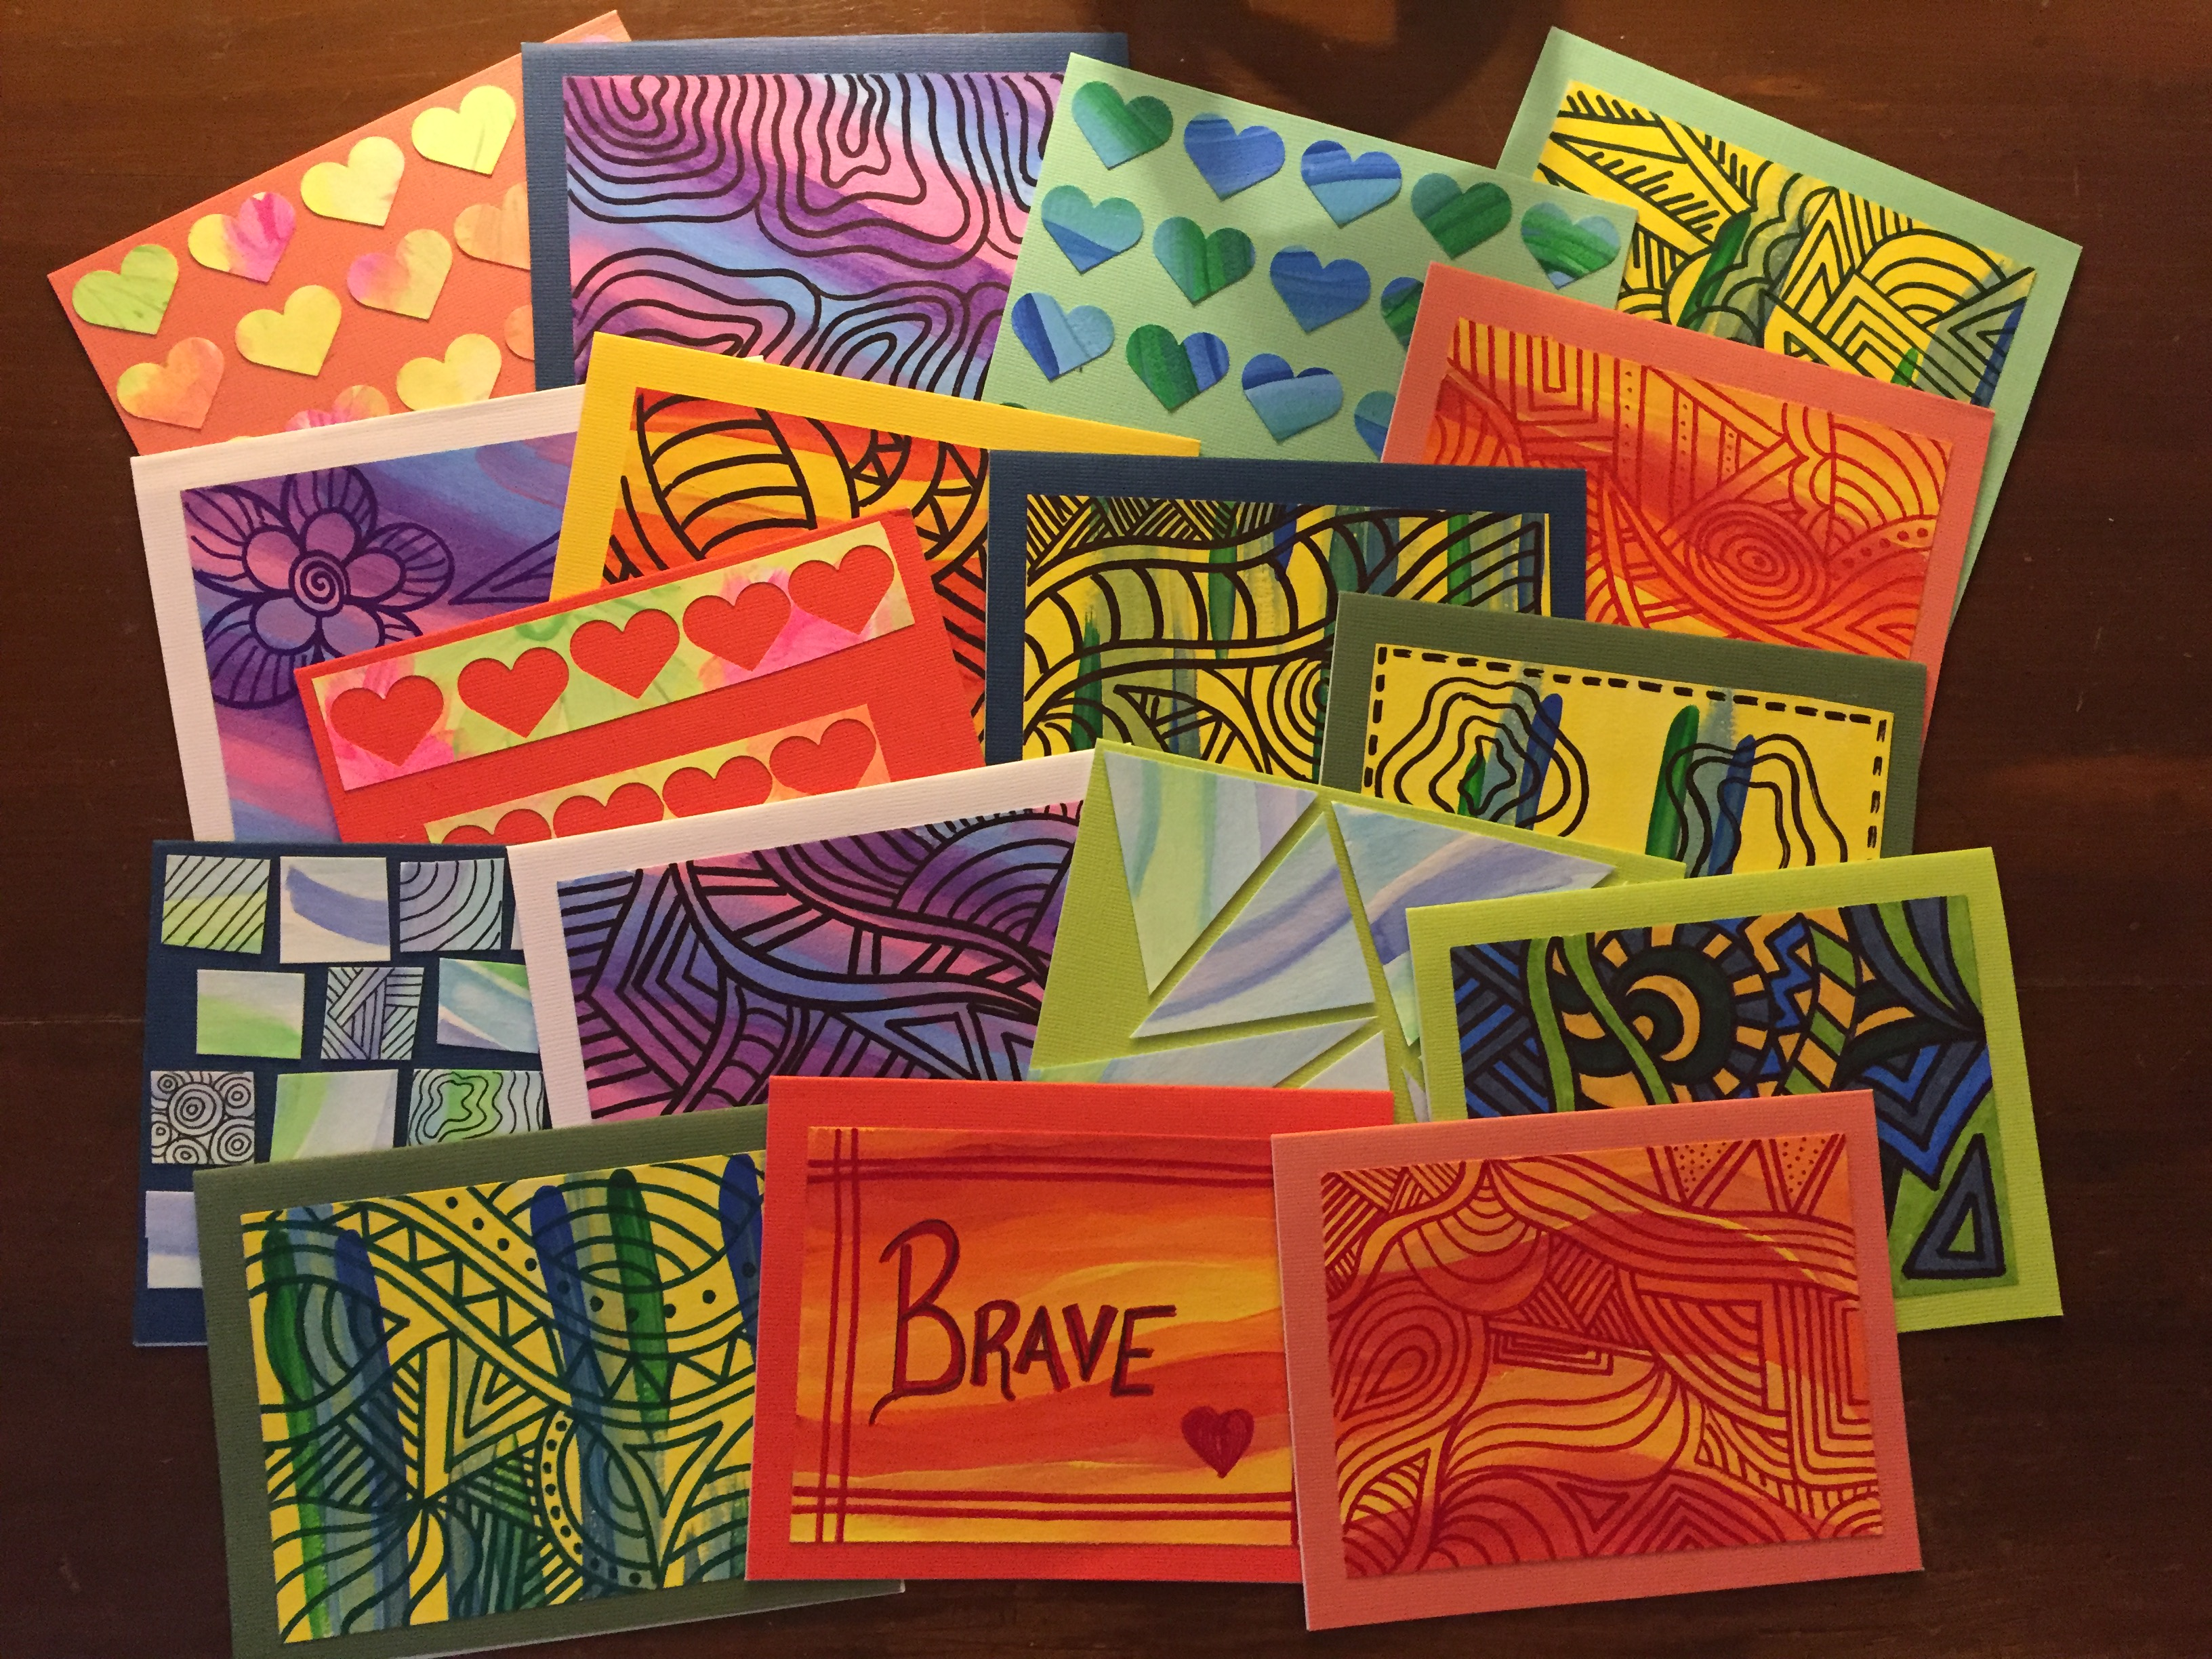 'not alone notes' for ocd awareness on colorful card